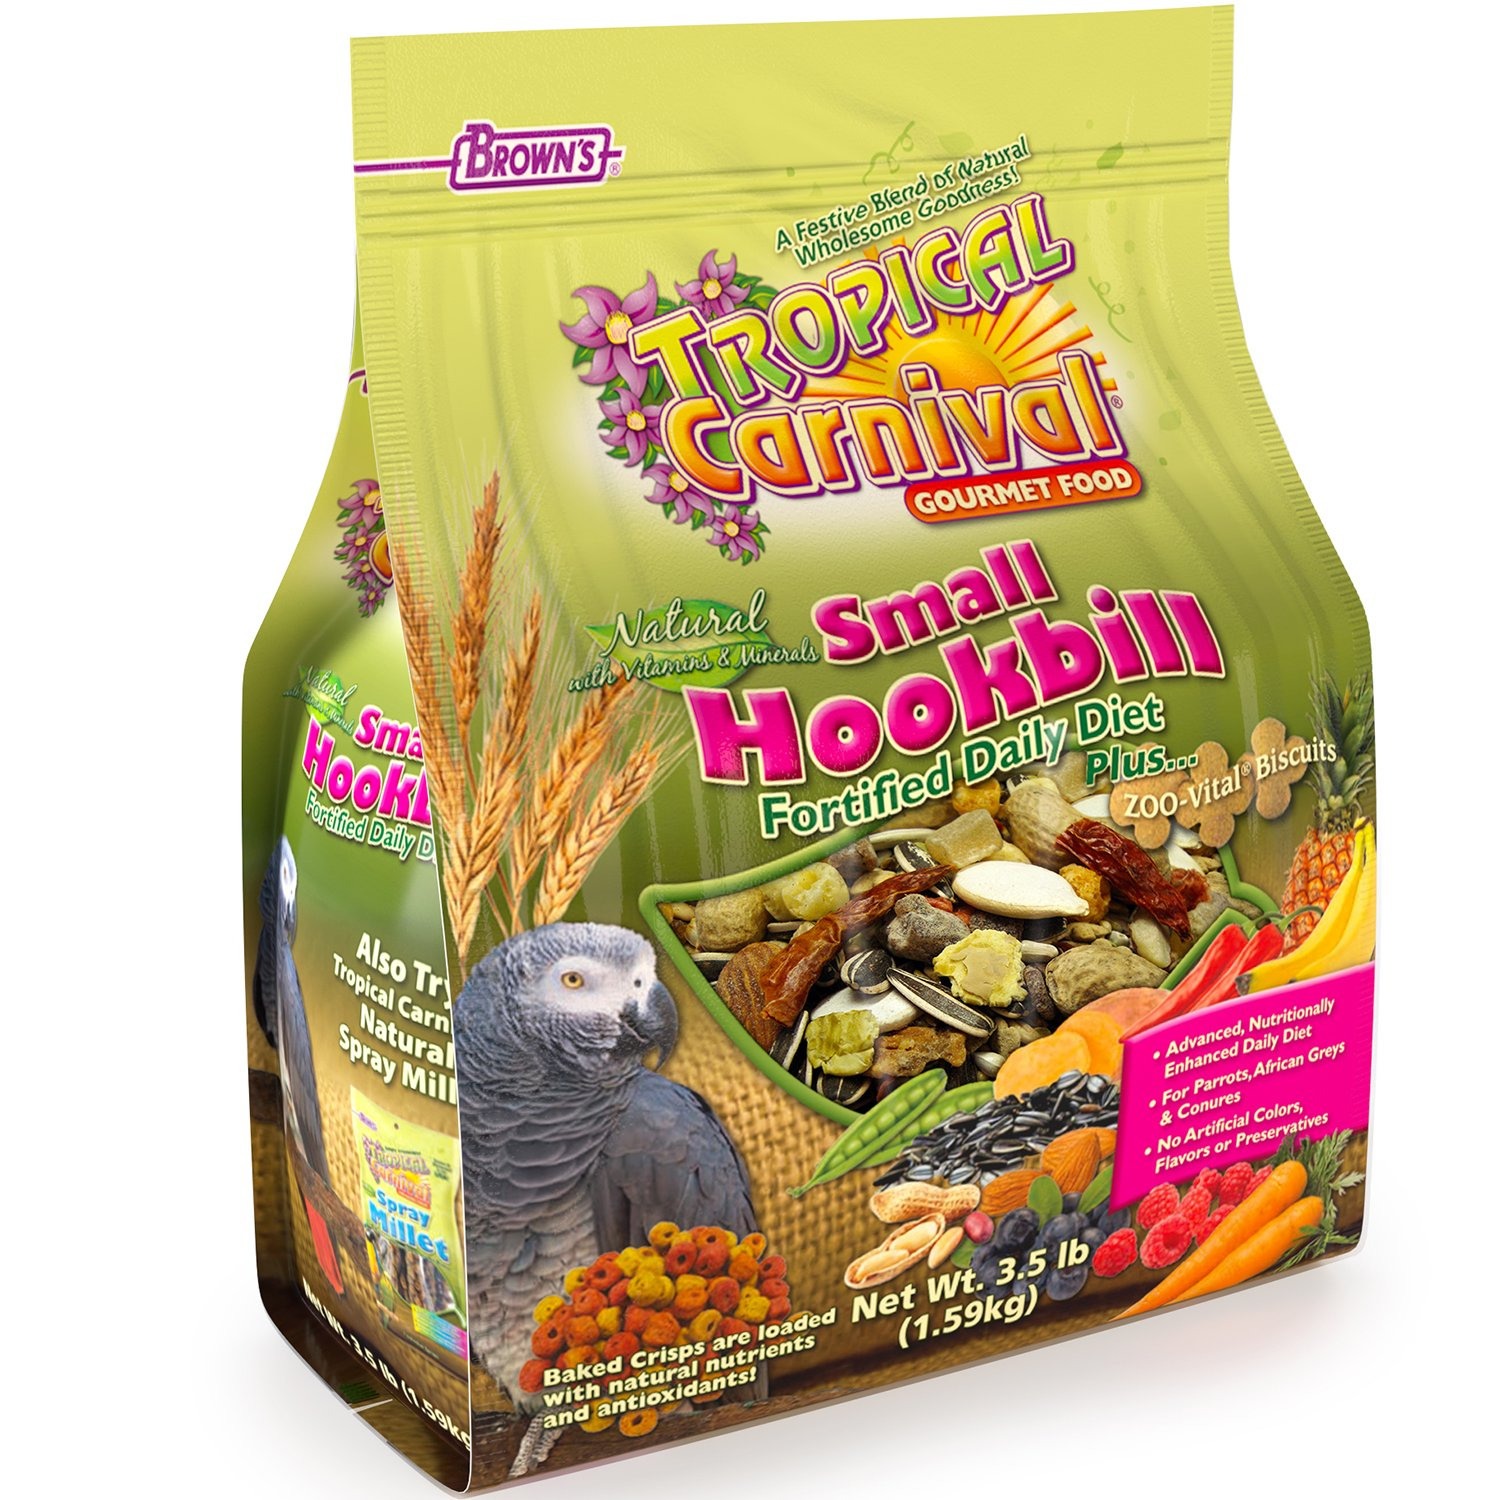 "F.M. Brown'S Tropical Carnival Natural Small Hookbill Food, 3.5-Lb Bag - Vitamin-Nutrient Fortified Daily Diet For Parrots, African Greys And Conures Under 13"", No Artificial Colors Or Flavors"